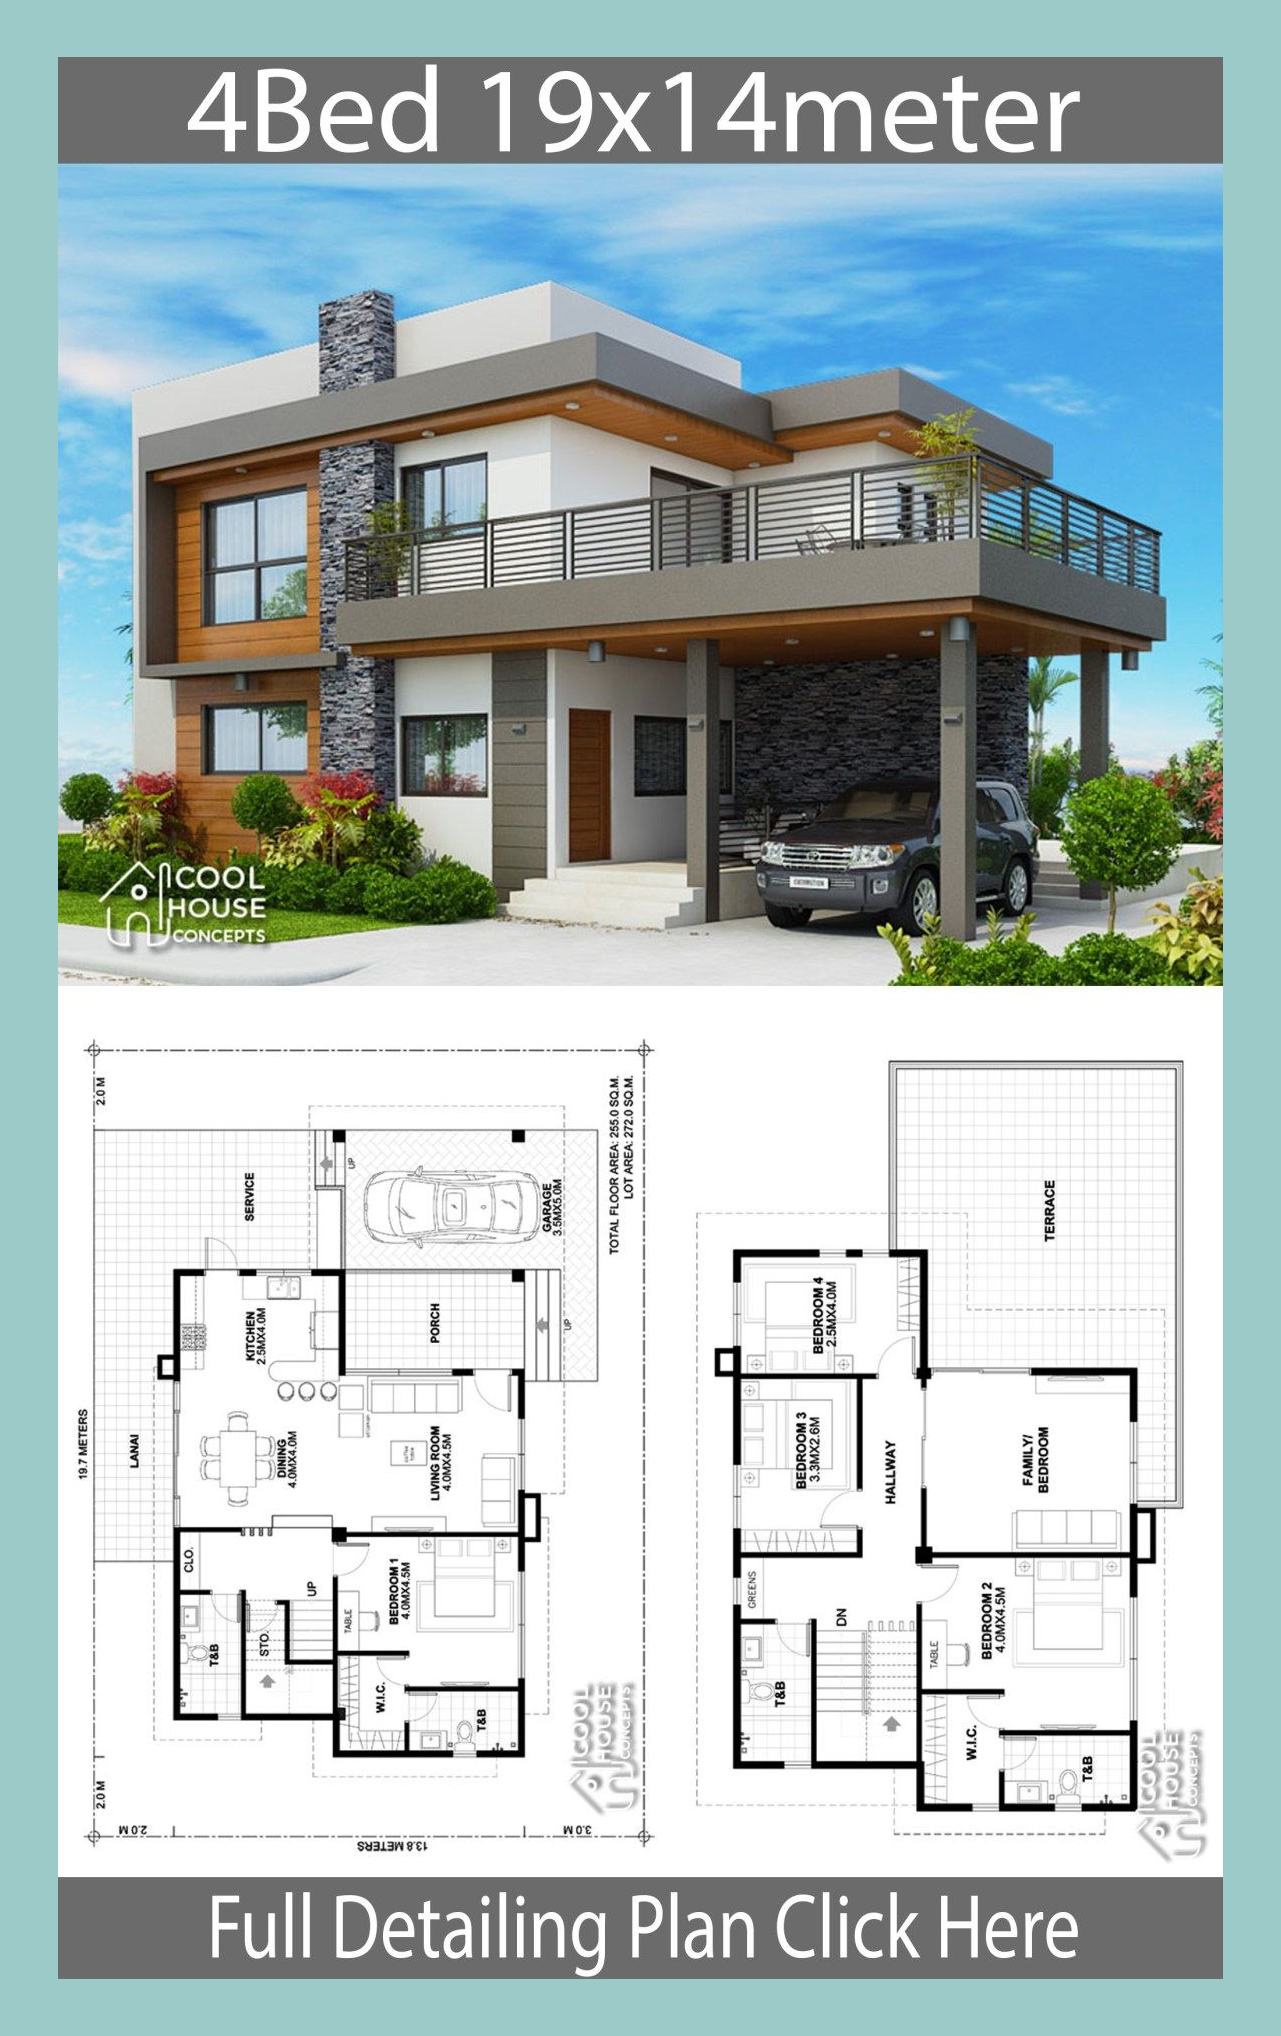 Home Design Plan 19x14m With 4 Bedrooms Homedesign In 2020 Architectural House Plans Beautiful House Plans Model House Plan